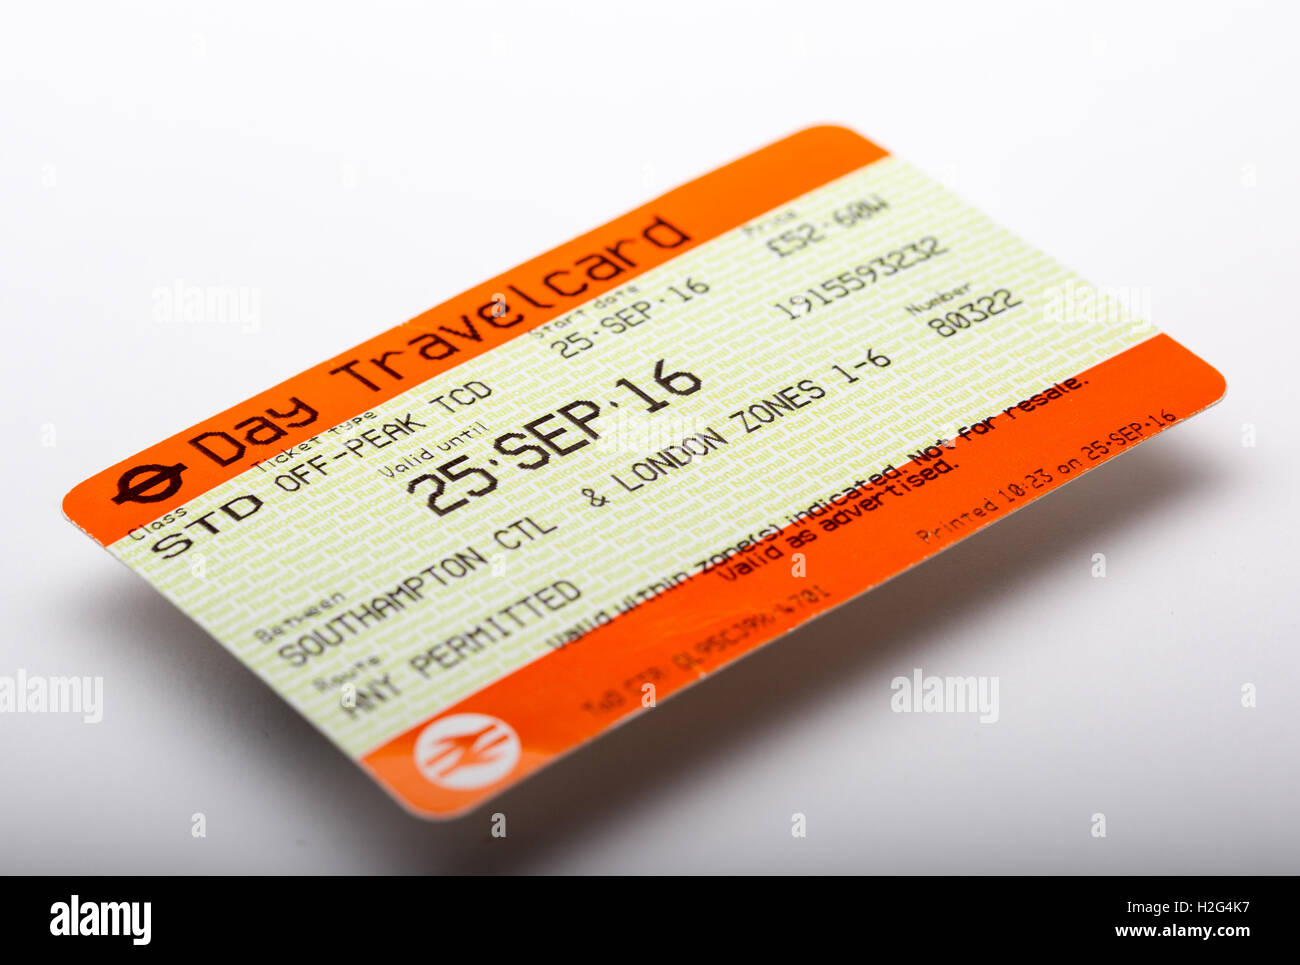 A National Rail Day Travel Card train ticket - Stock Image